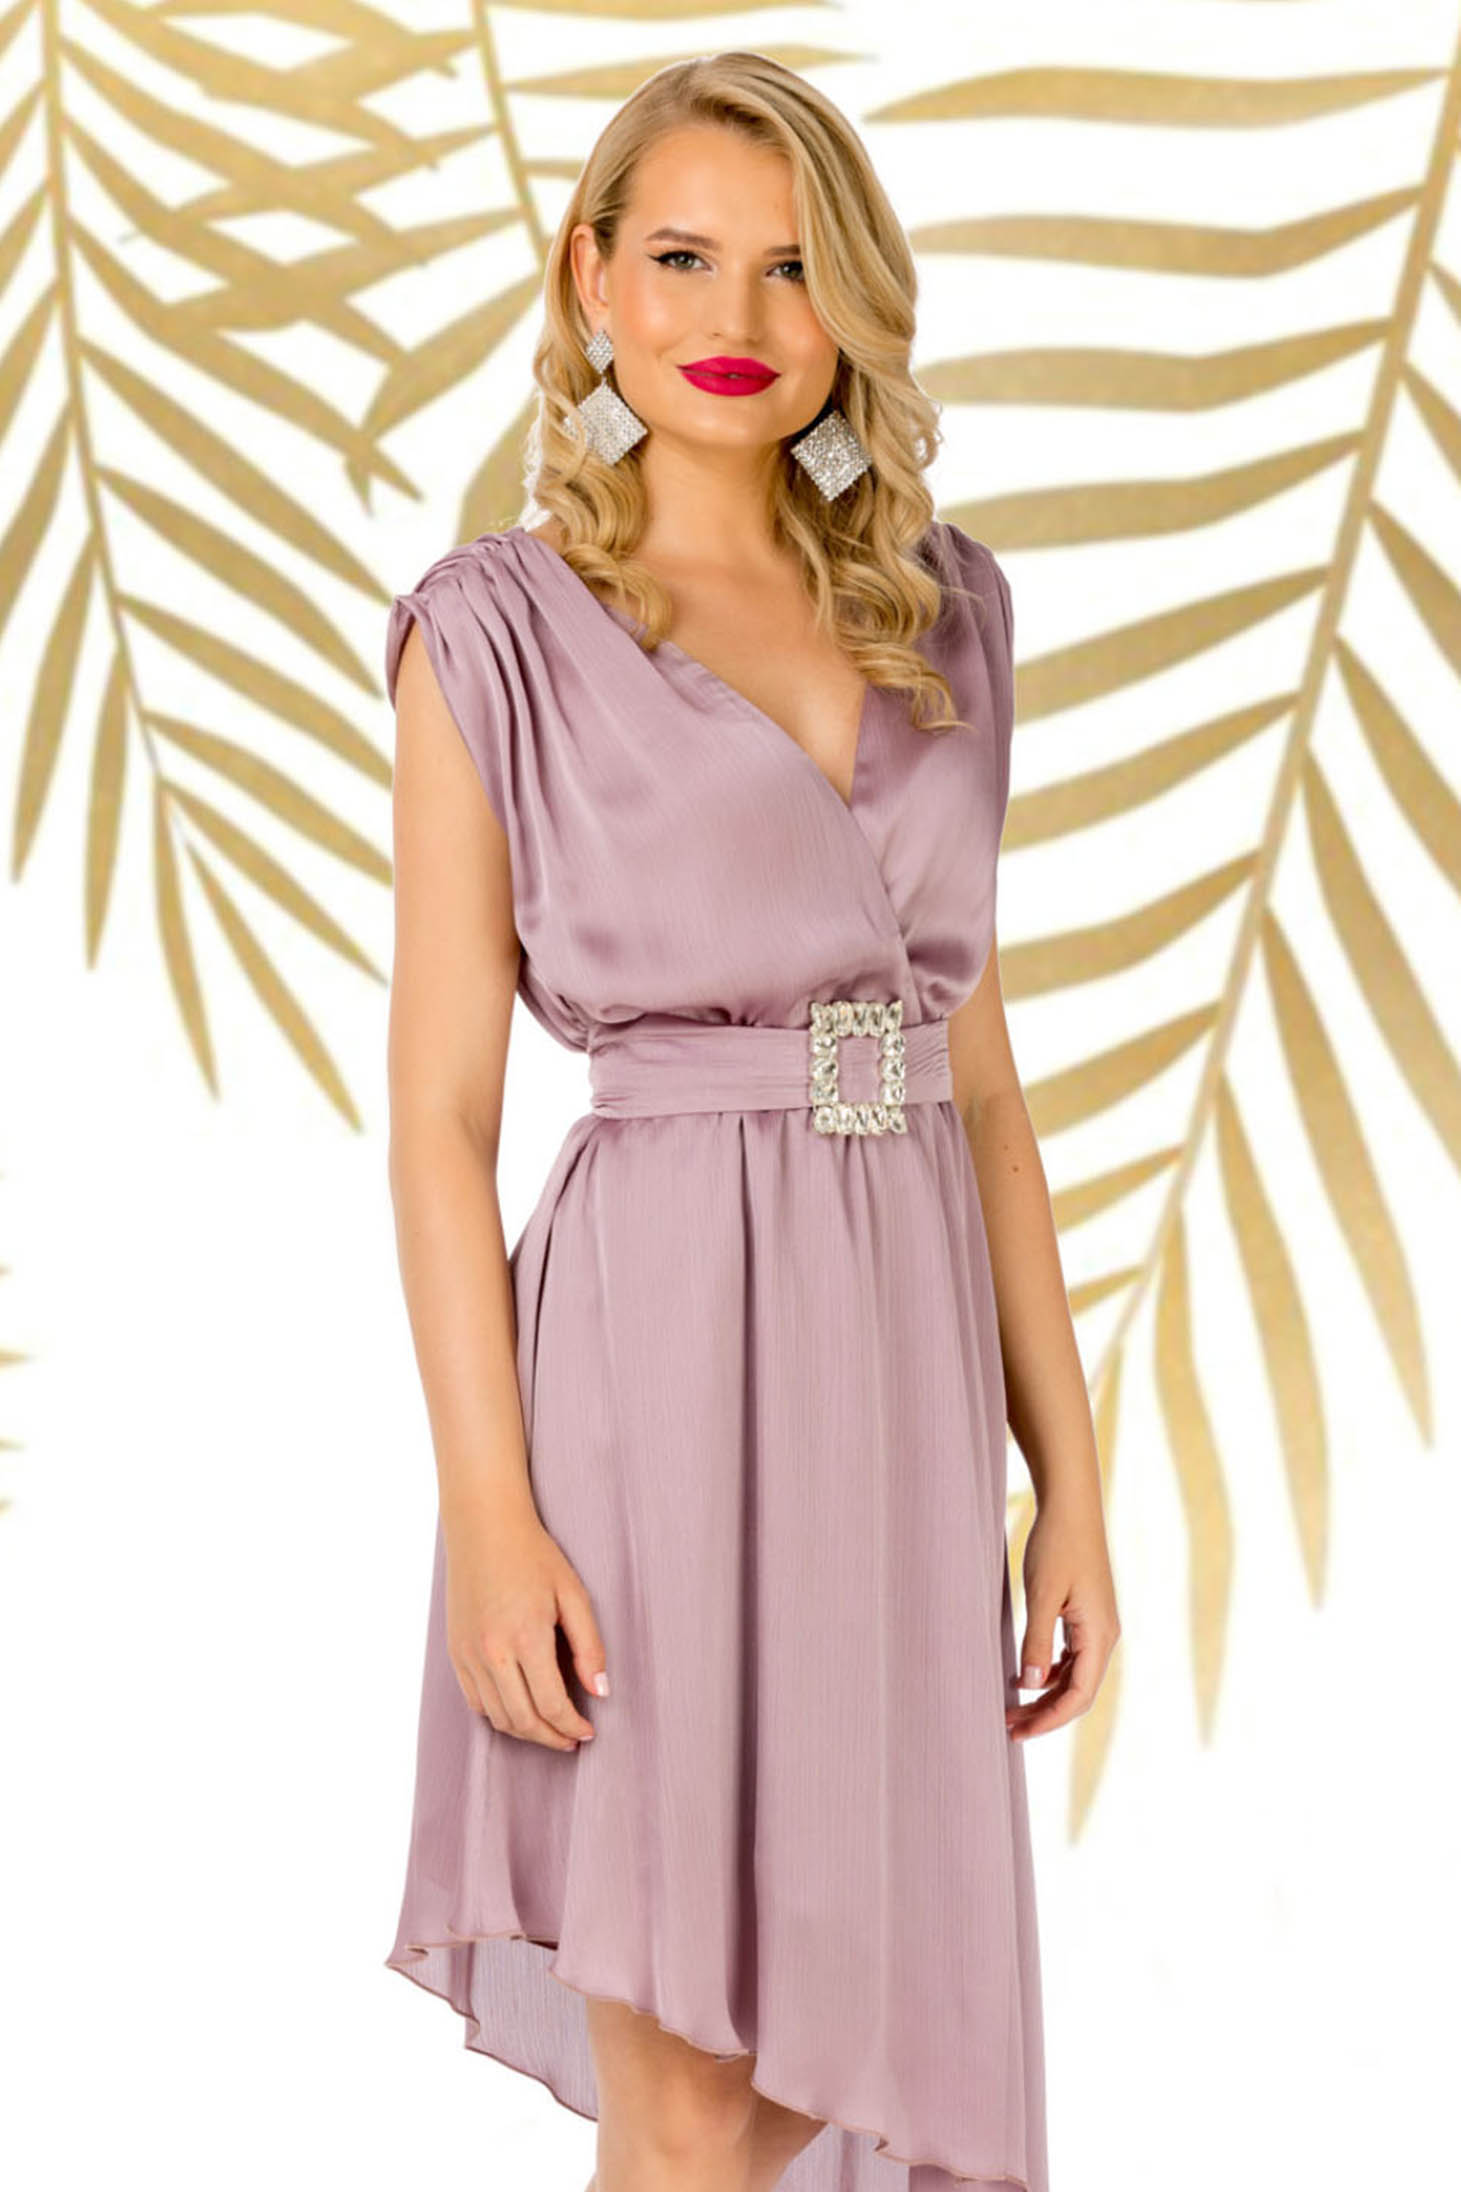 Lightpink dress elegant asymmetrical cloche with v-neckline accessorized with tied waistband